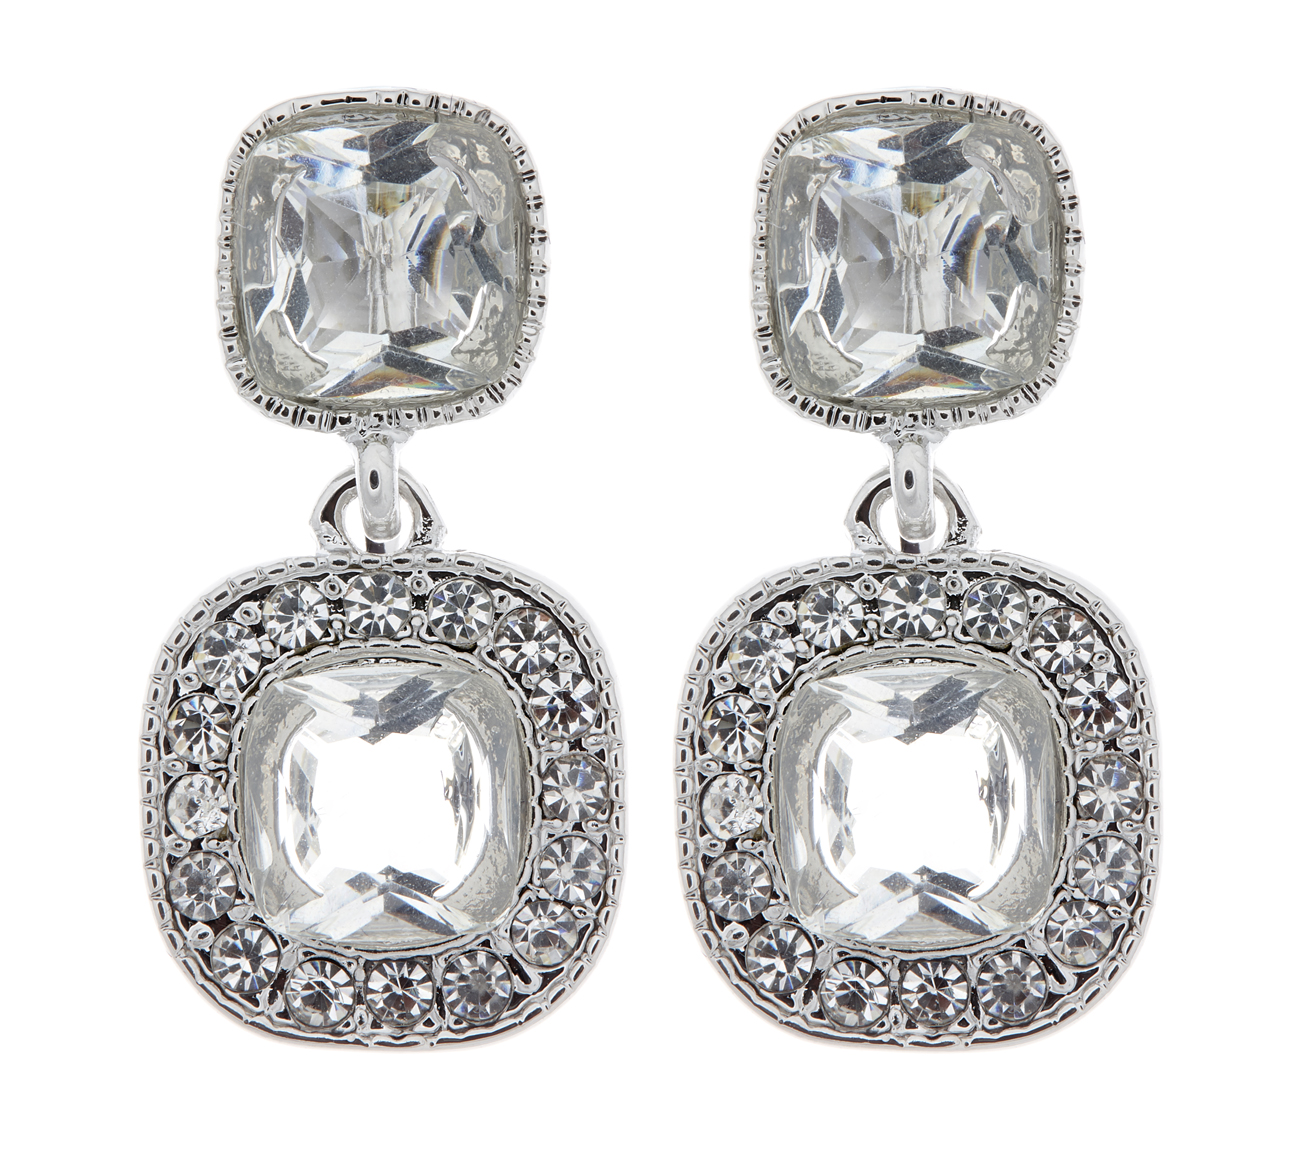 Clip On Earrings - Mara - silver drop earring with CZ crystals and stones